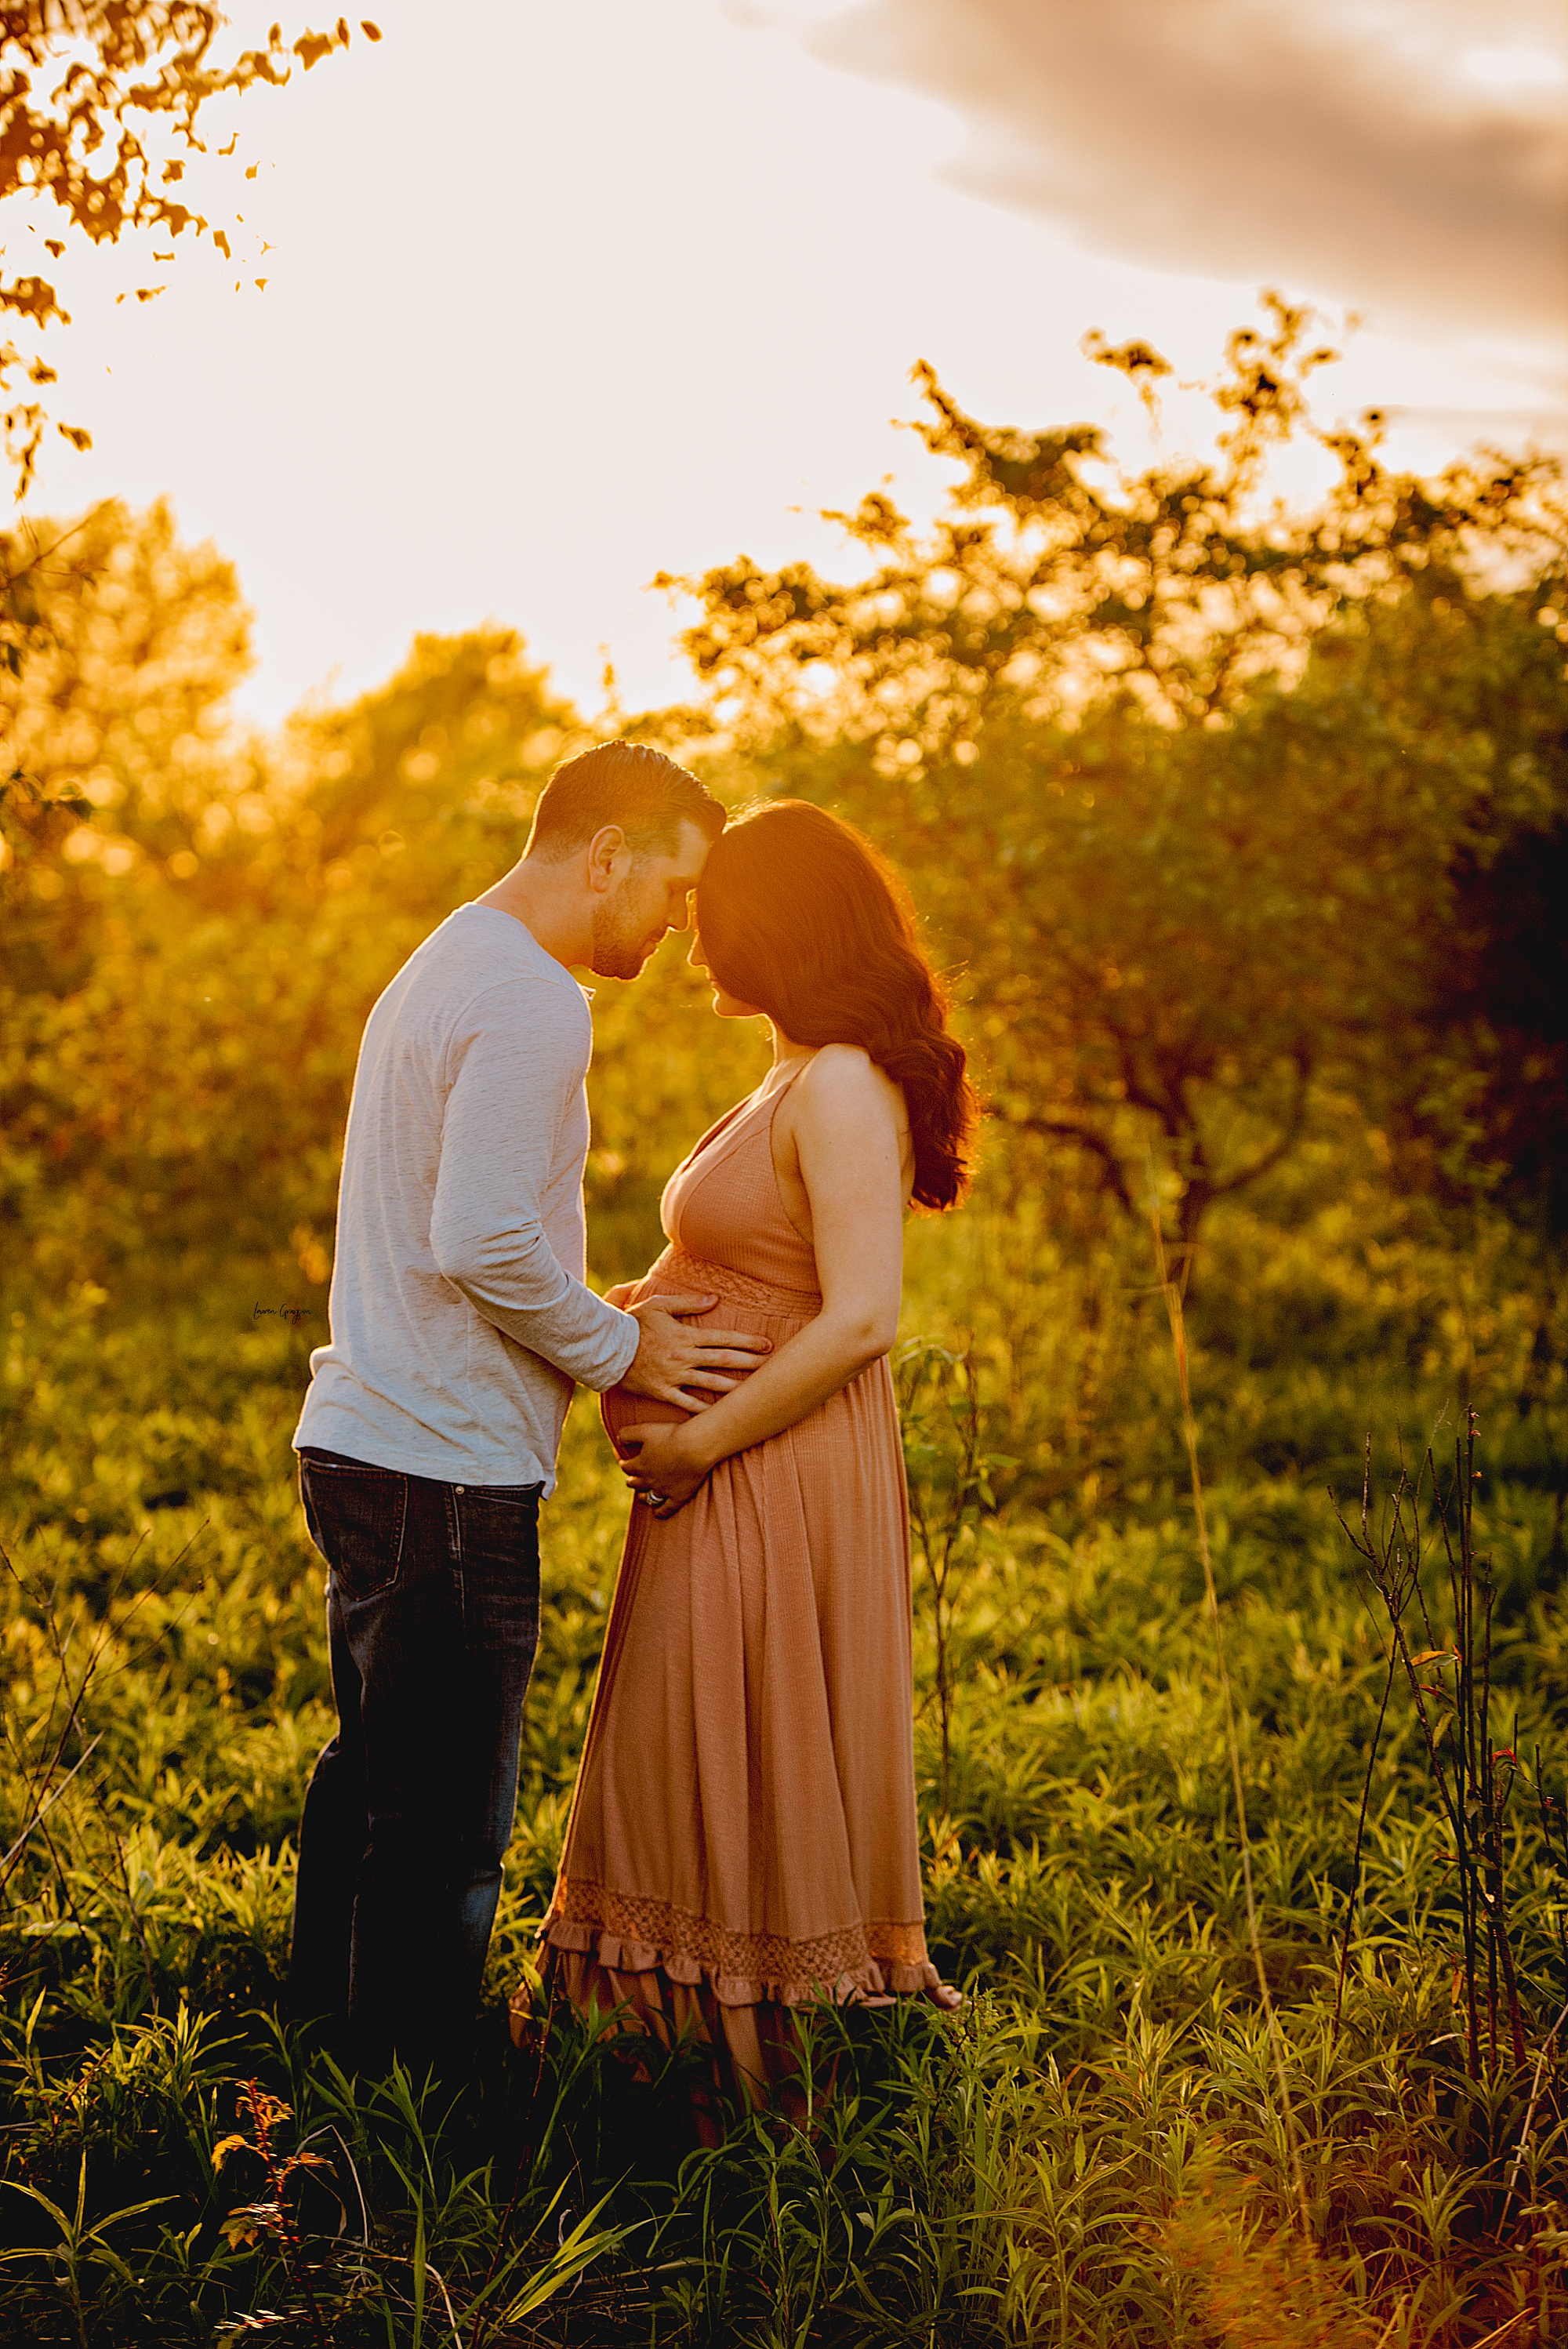 Medina Photography, Outdoor Maternity Session at sunset, lauren grayson photography